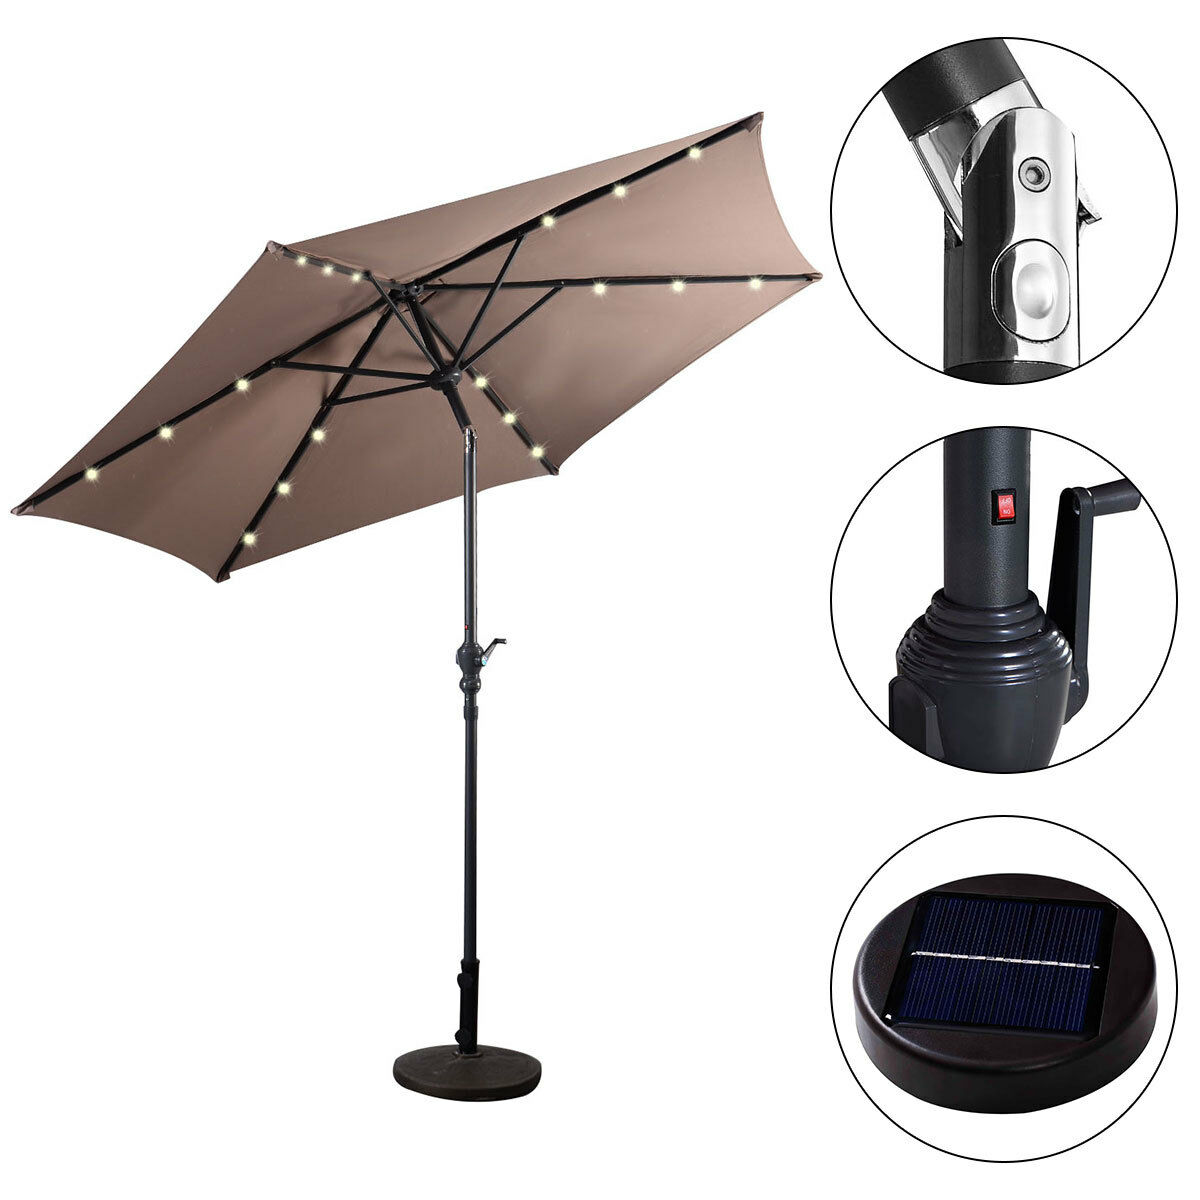 9FT-Patio-Solar-Umbrella-LED-Patio-Market-Steel-Tilt-W-Crank-Outdoor-GOPLUS-New thumbnail 28